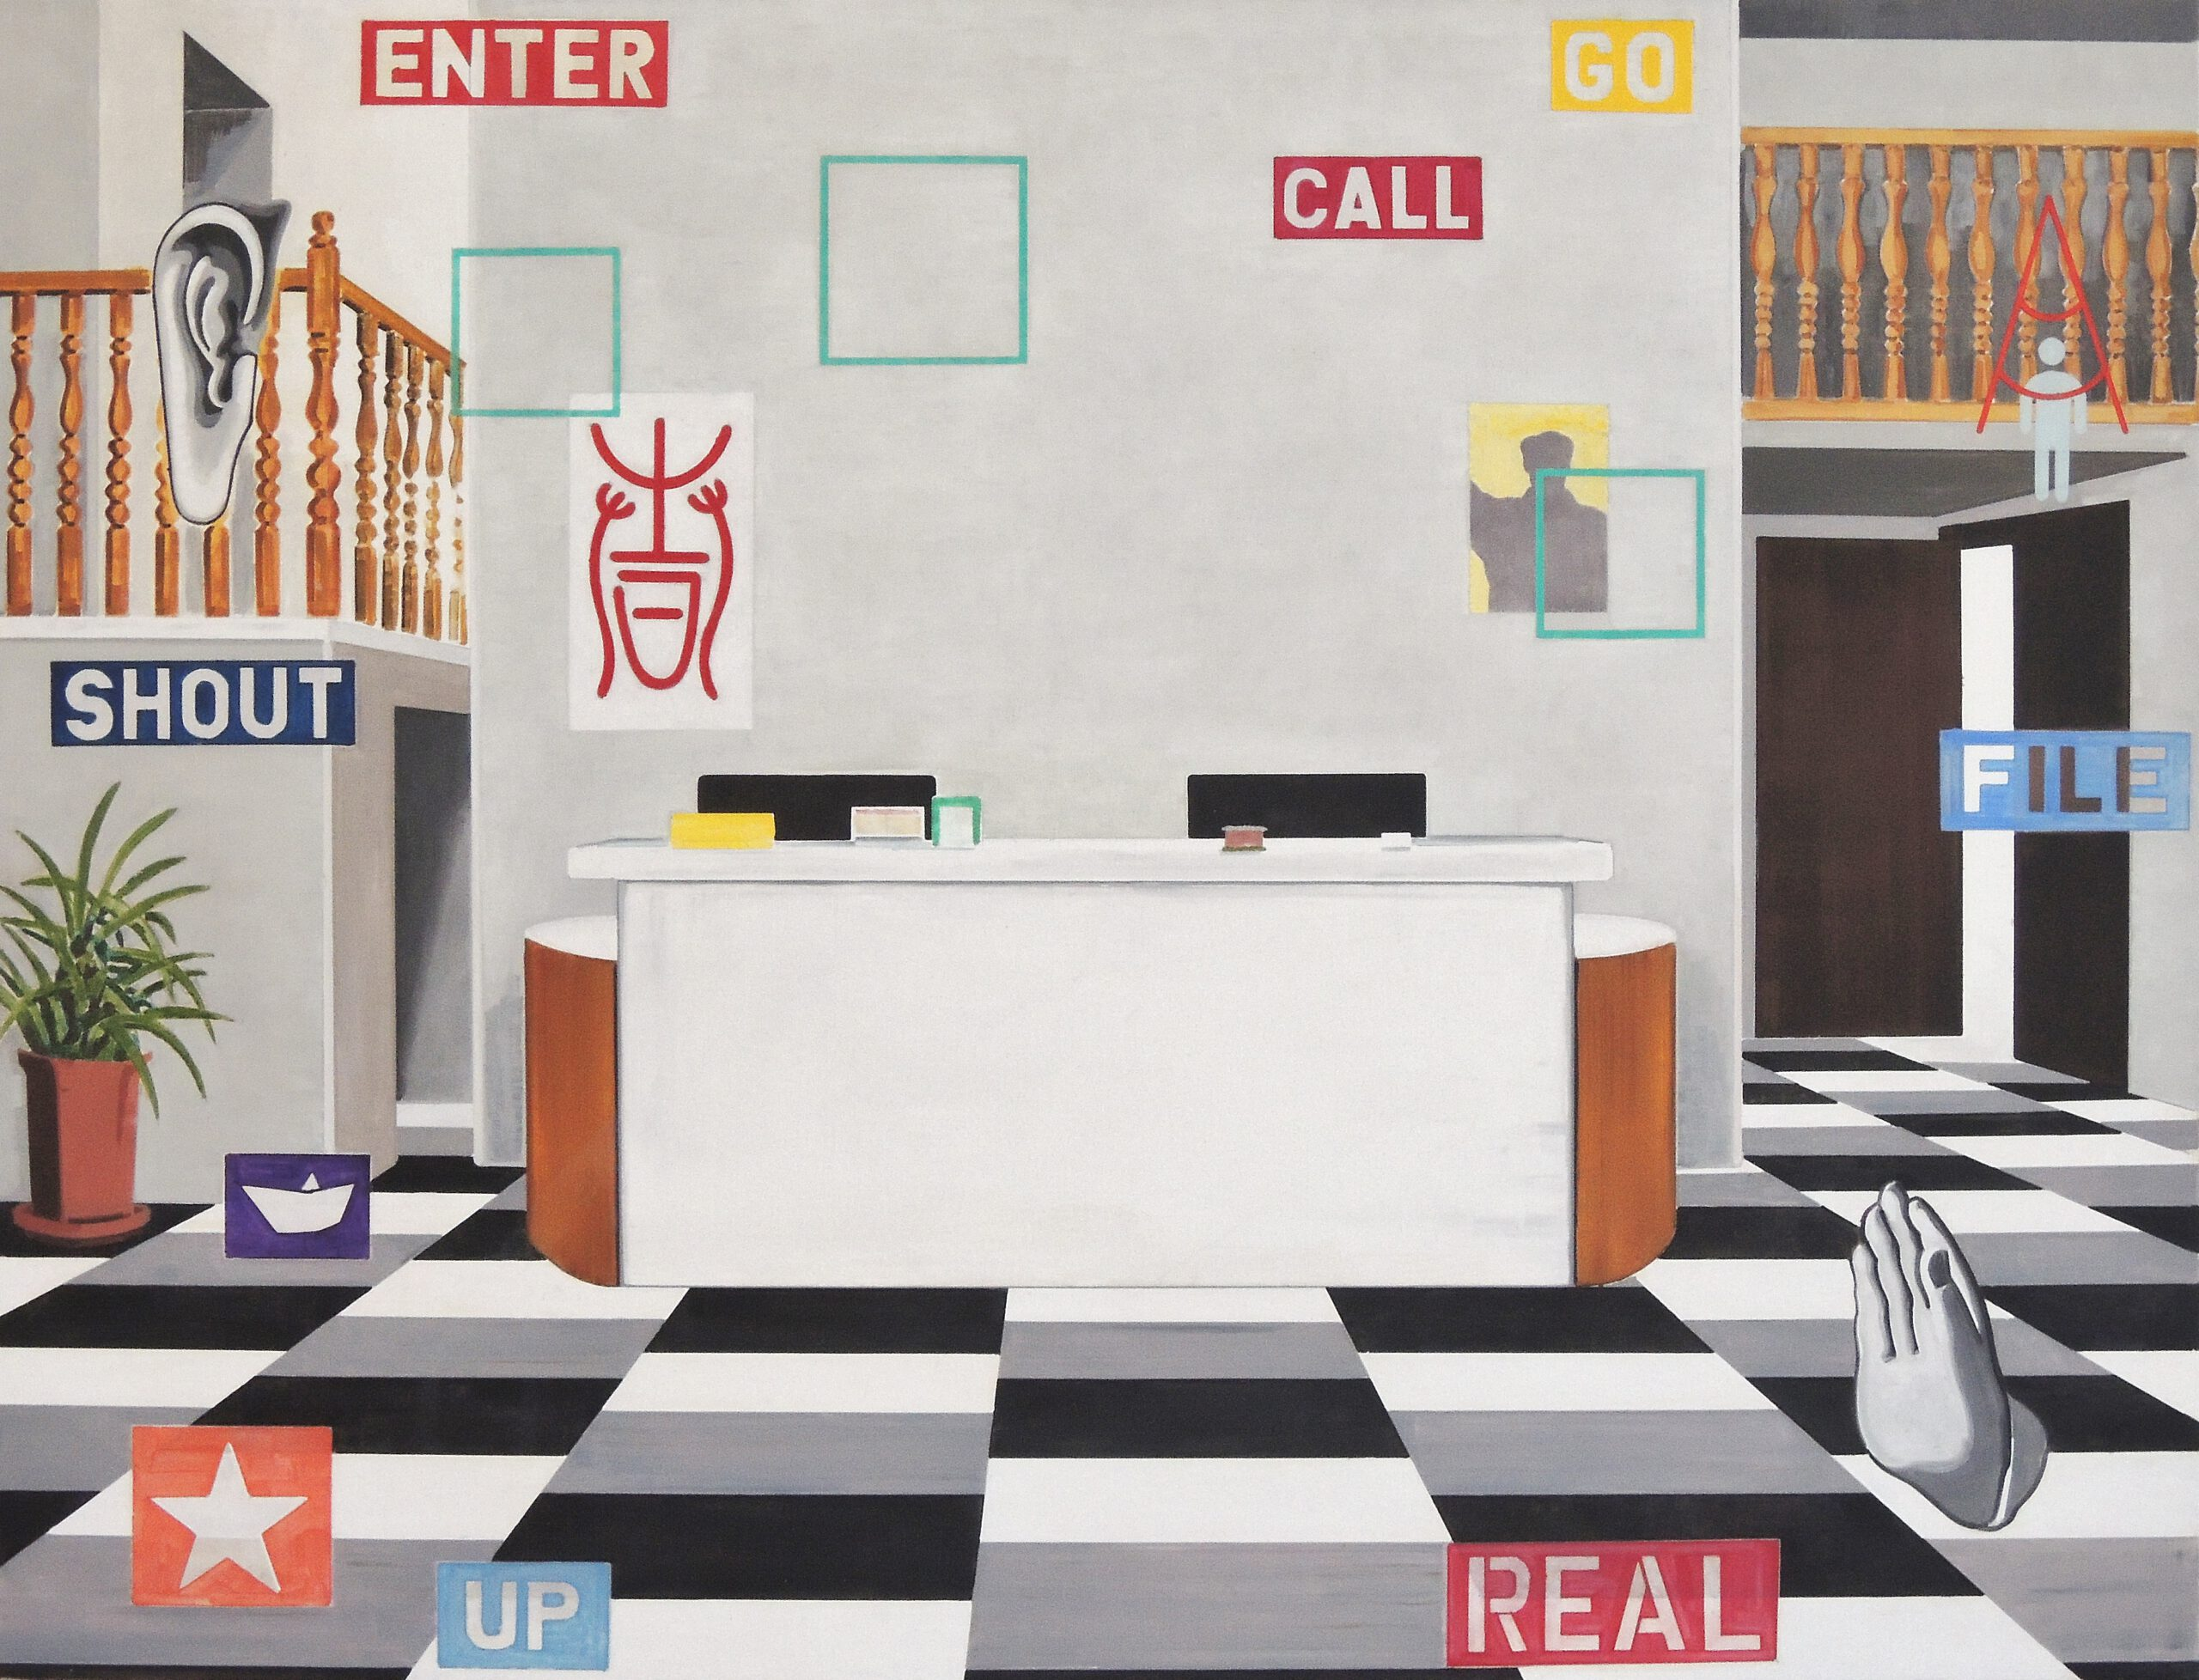 Chinese Lobby (2), oil on canvas, 120 x 160 cm, 2021